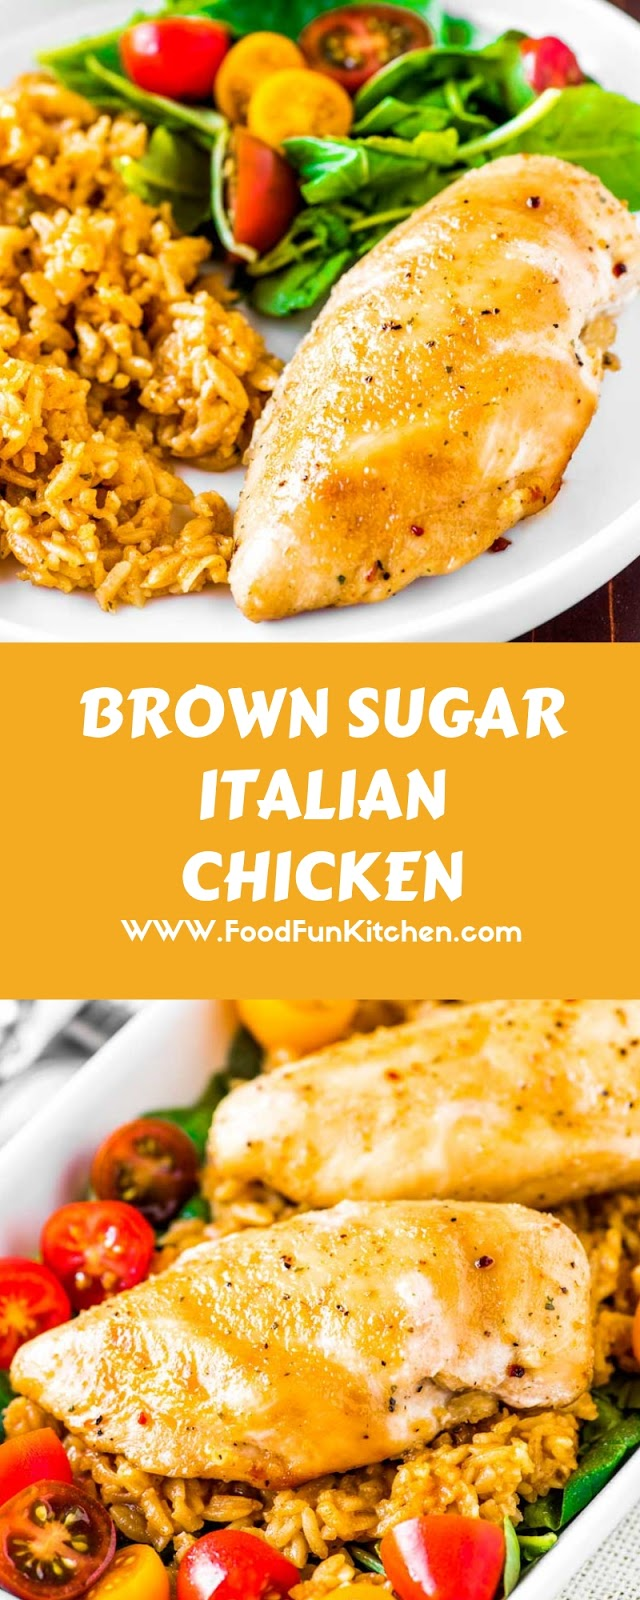 BROWN SUGAR ITALIAN CHICKEN